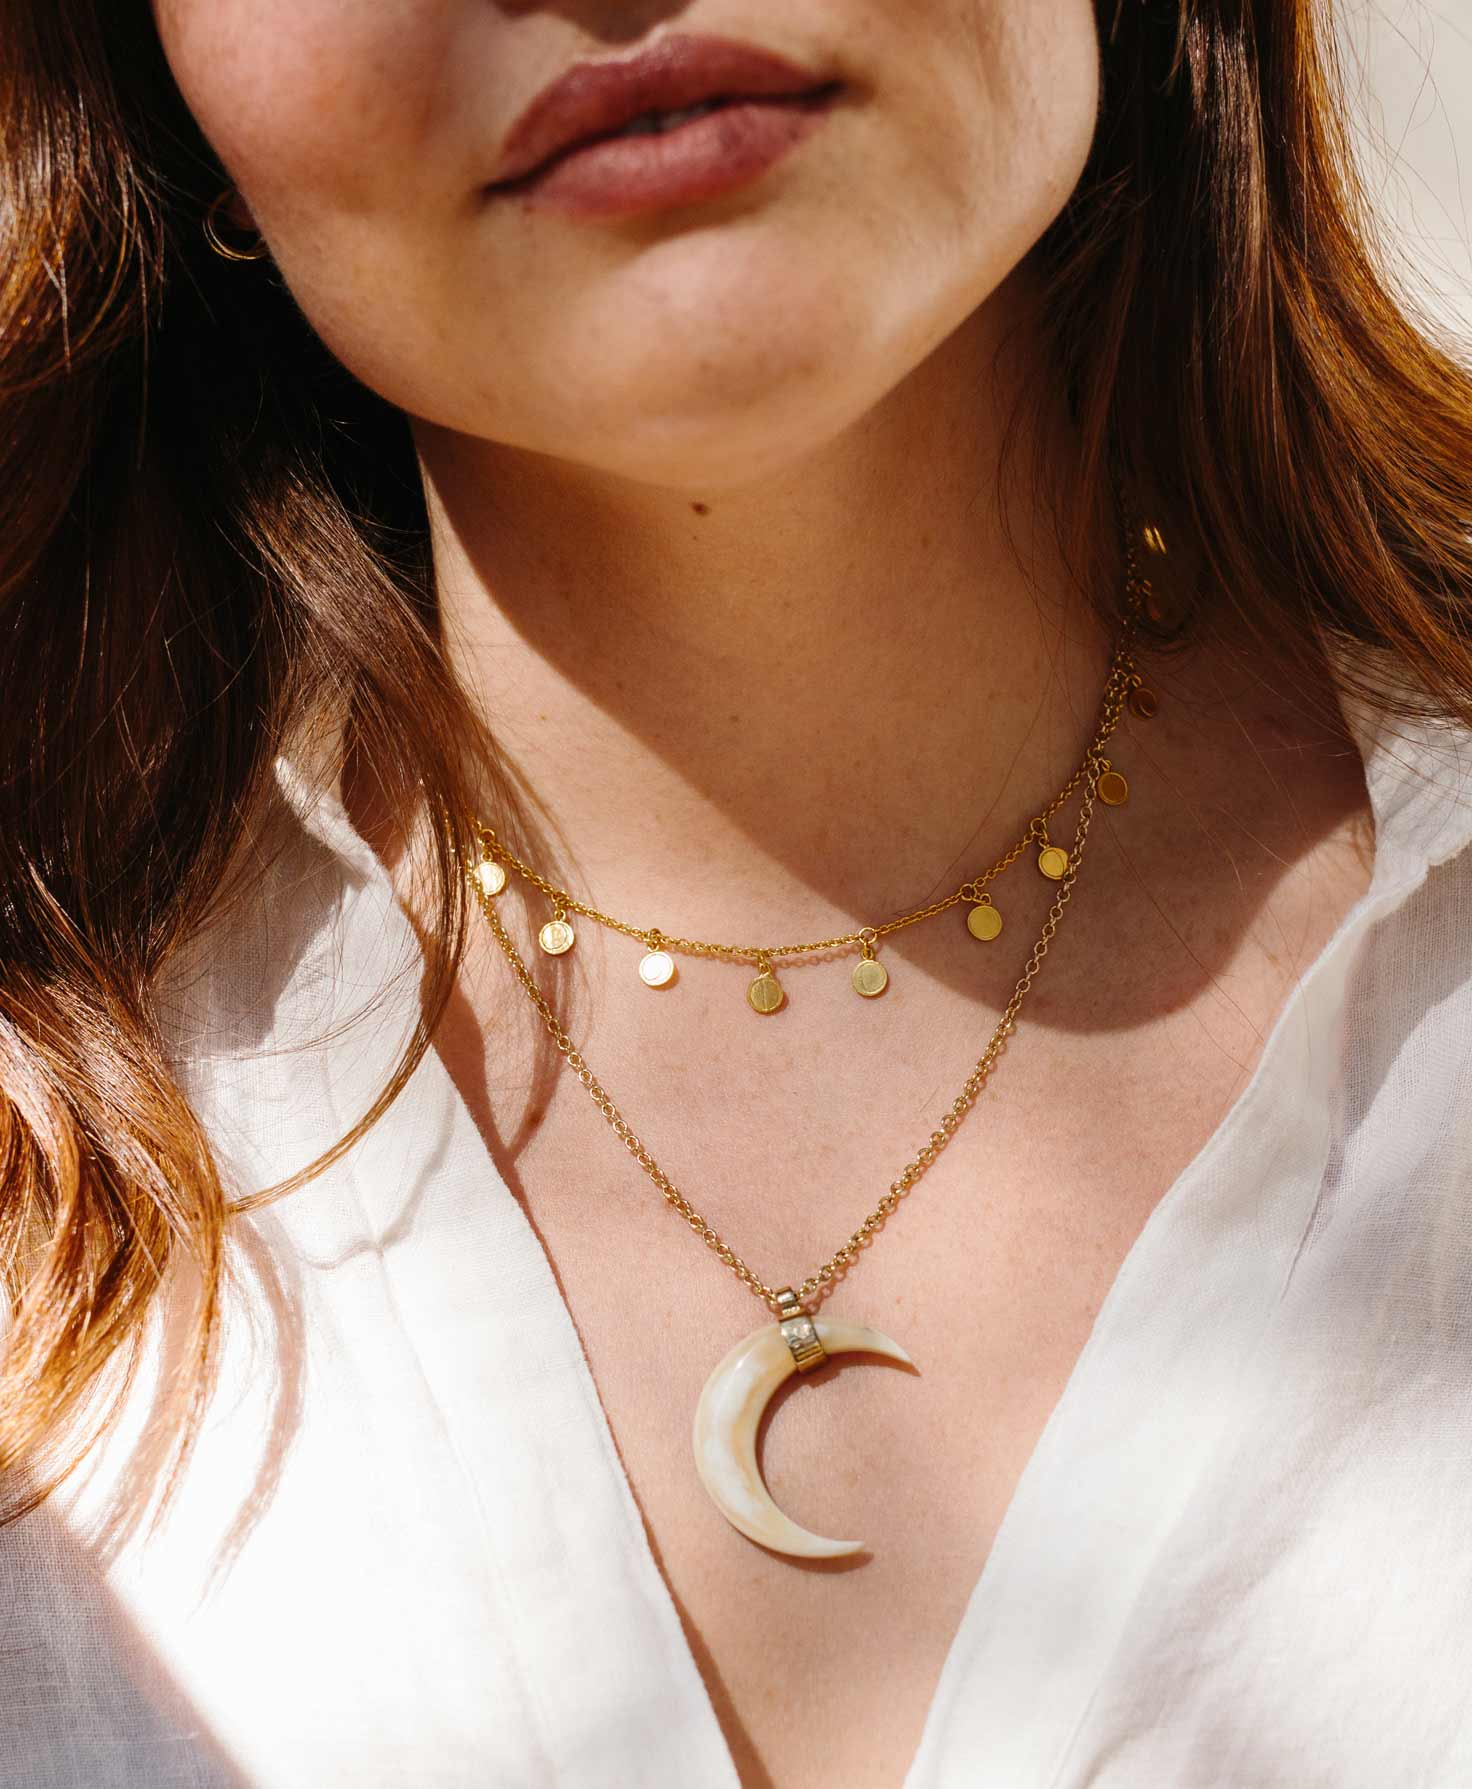 A model wears a silky white top with a v-neck. She wears the golden Lunar Necklace with the longer Mystic Moon Necklace. The two necklaces together create a celestial, magical look.